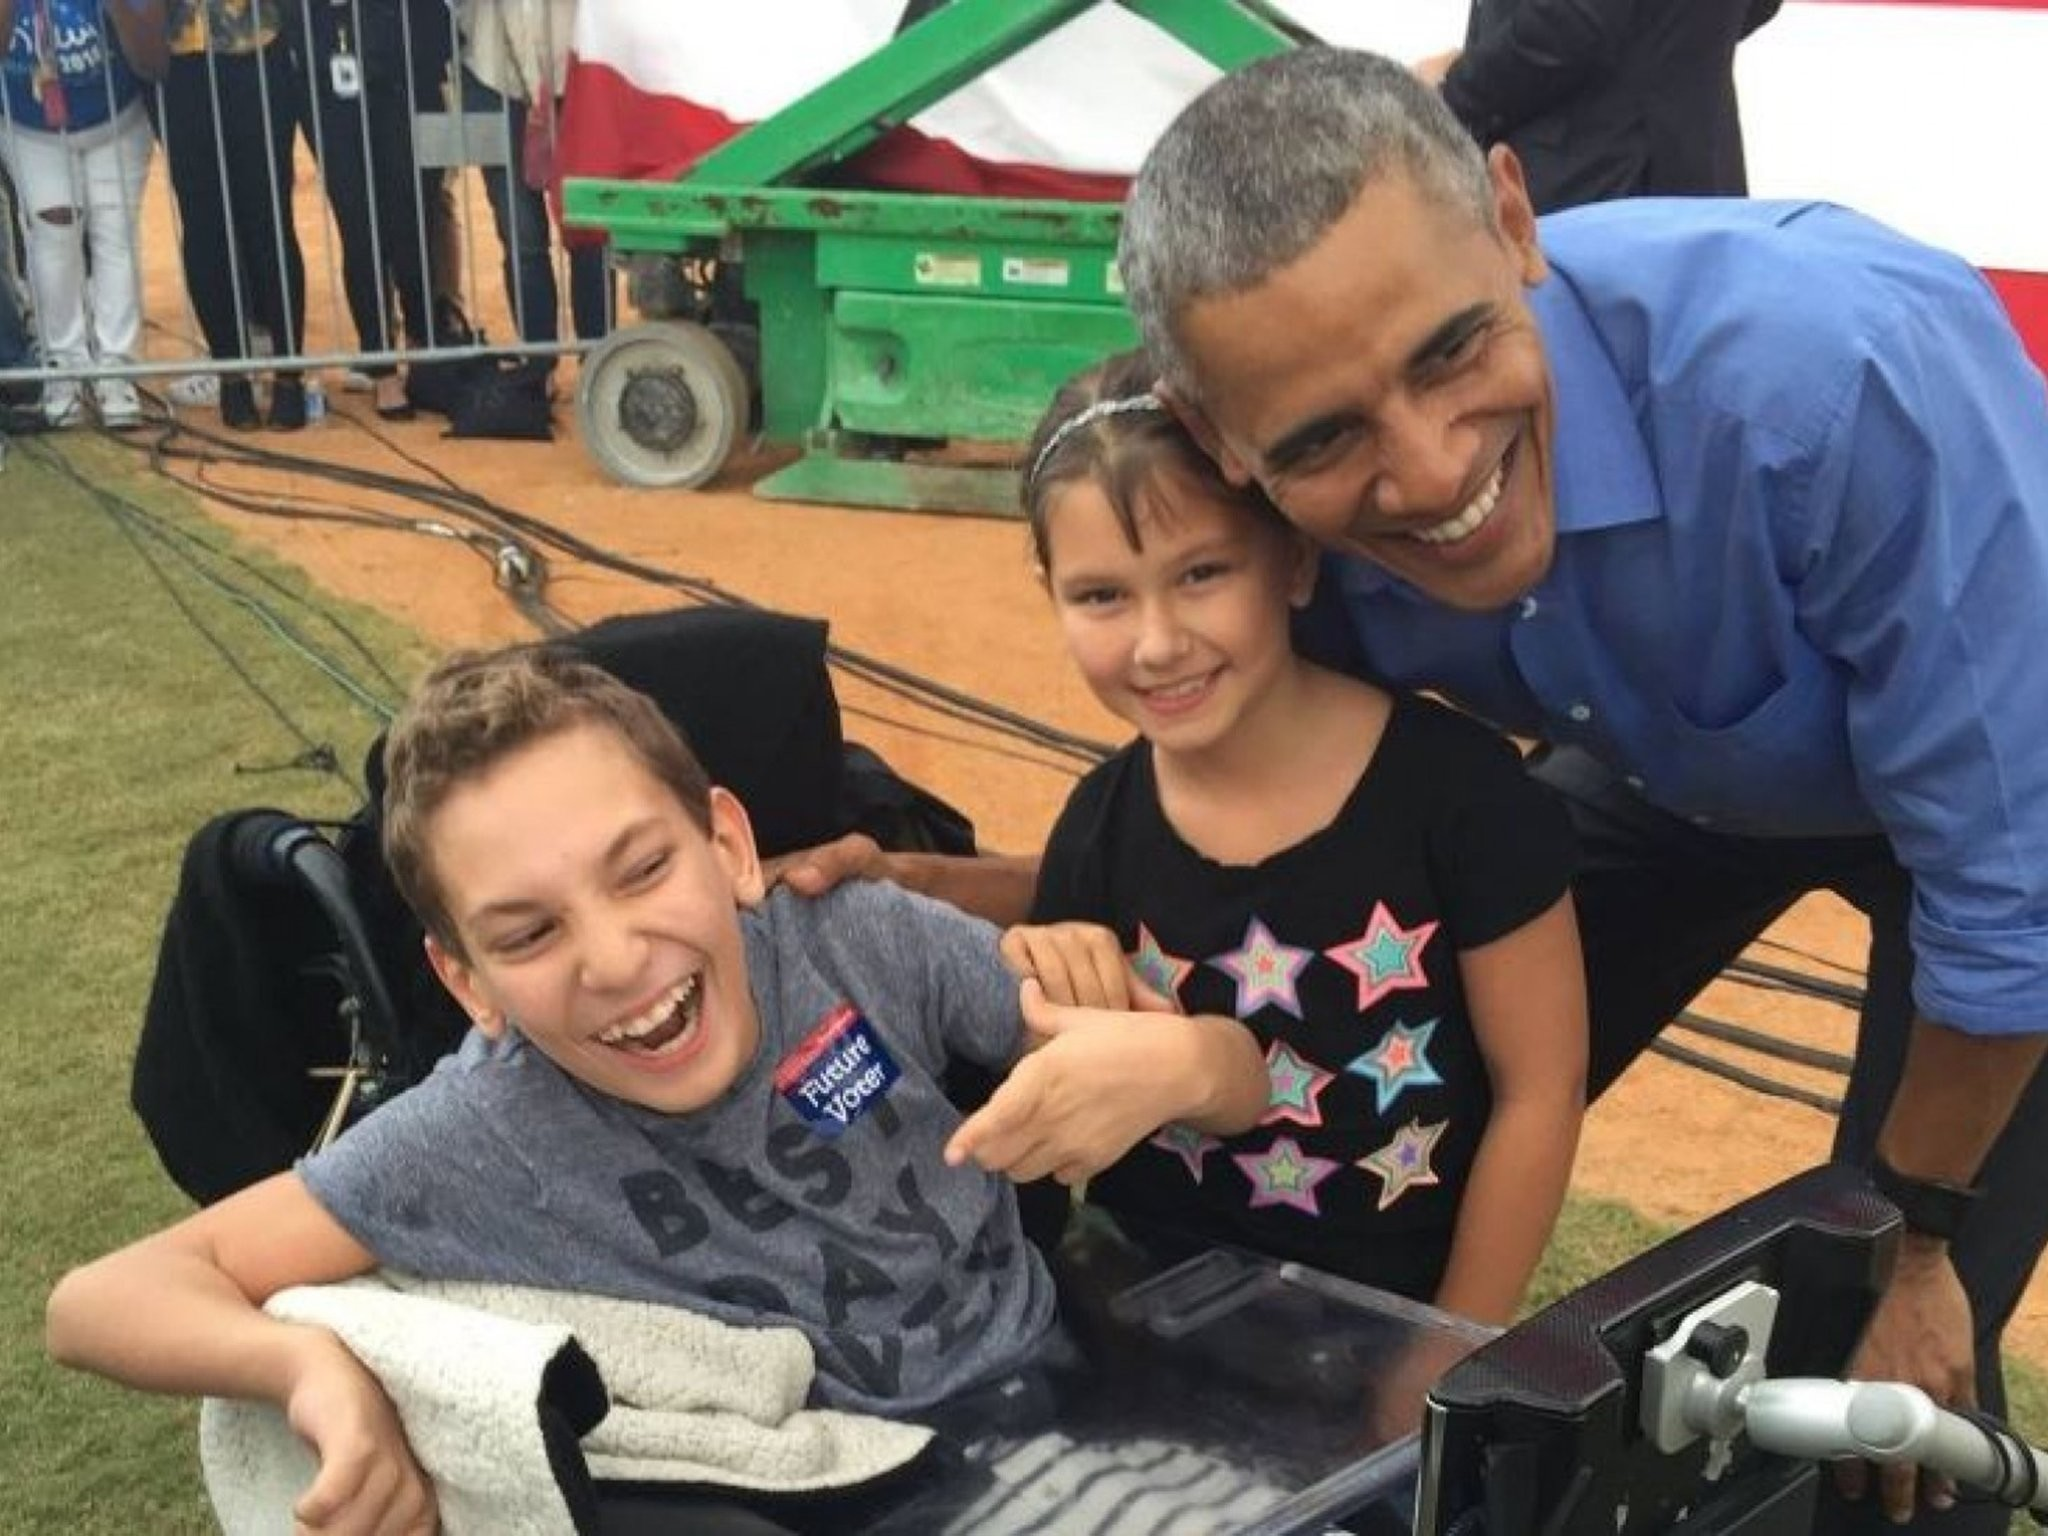 2048x1536 Obama meets child with cerebral palsy who was kicked out of Trump rally  after chanting for Hillary Clinton